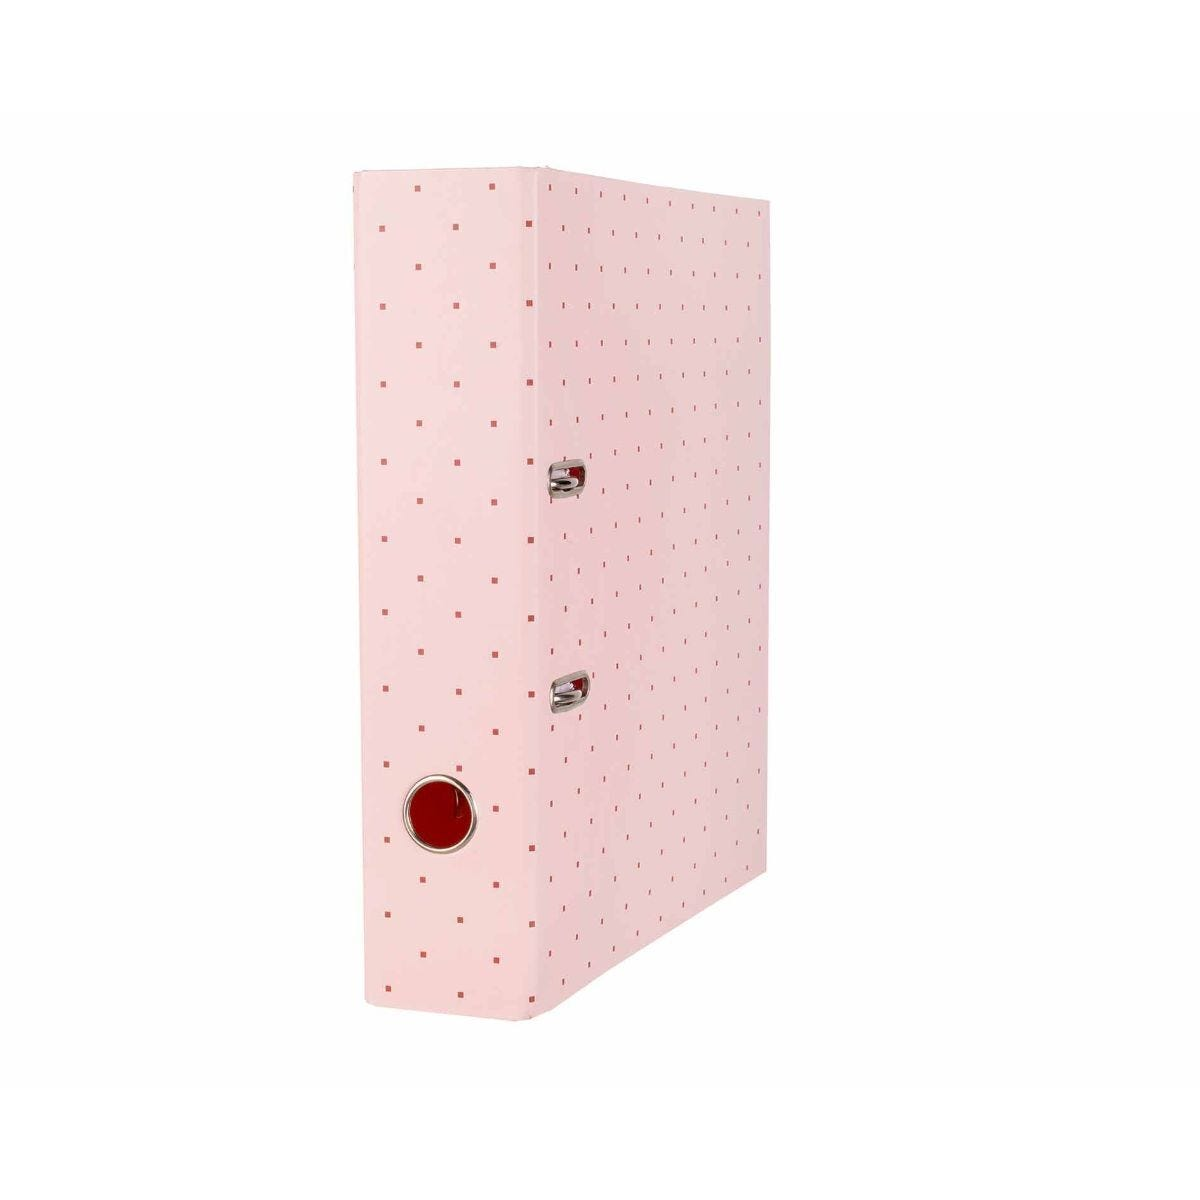 Ryman Lever Arch File Light Pink